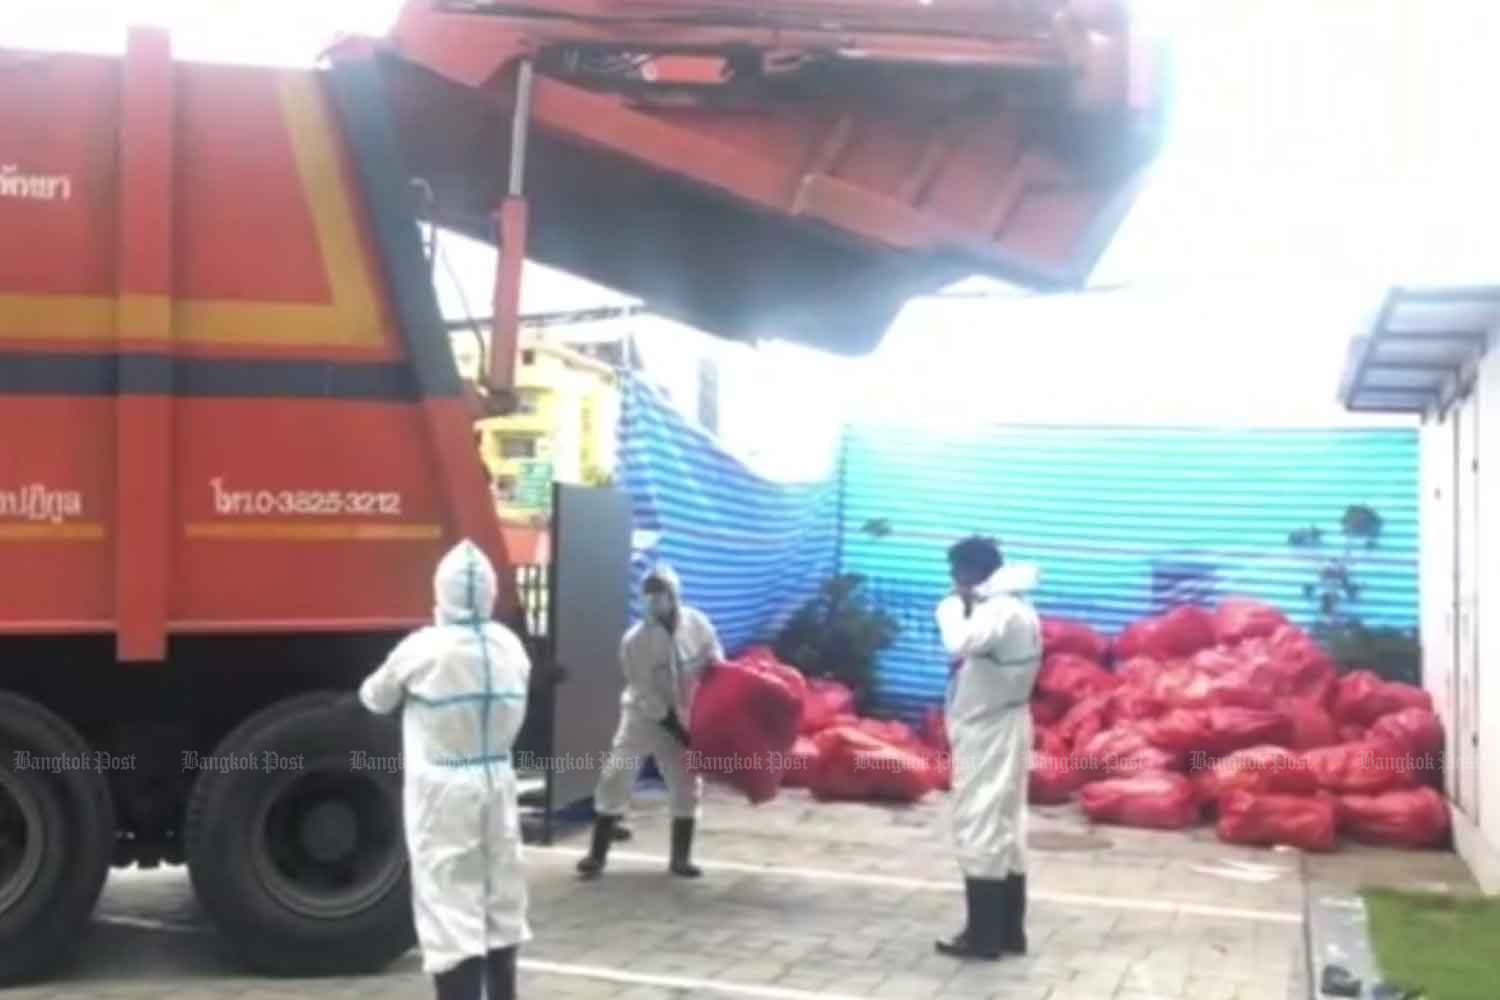 Workers collect red bags containing infectious waste in Pattaya. The quantity of infectious waste in Pattaya has increased along with the number of Covid-19 infections. (Photo: Chaiyot Pupattanapong)